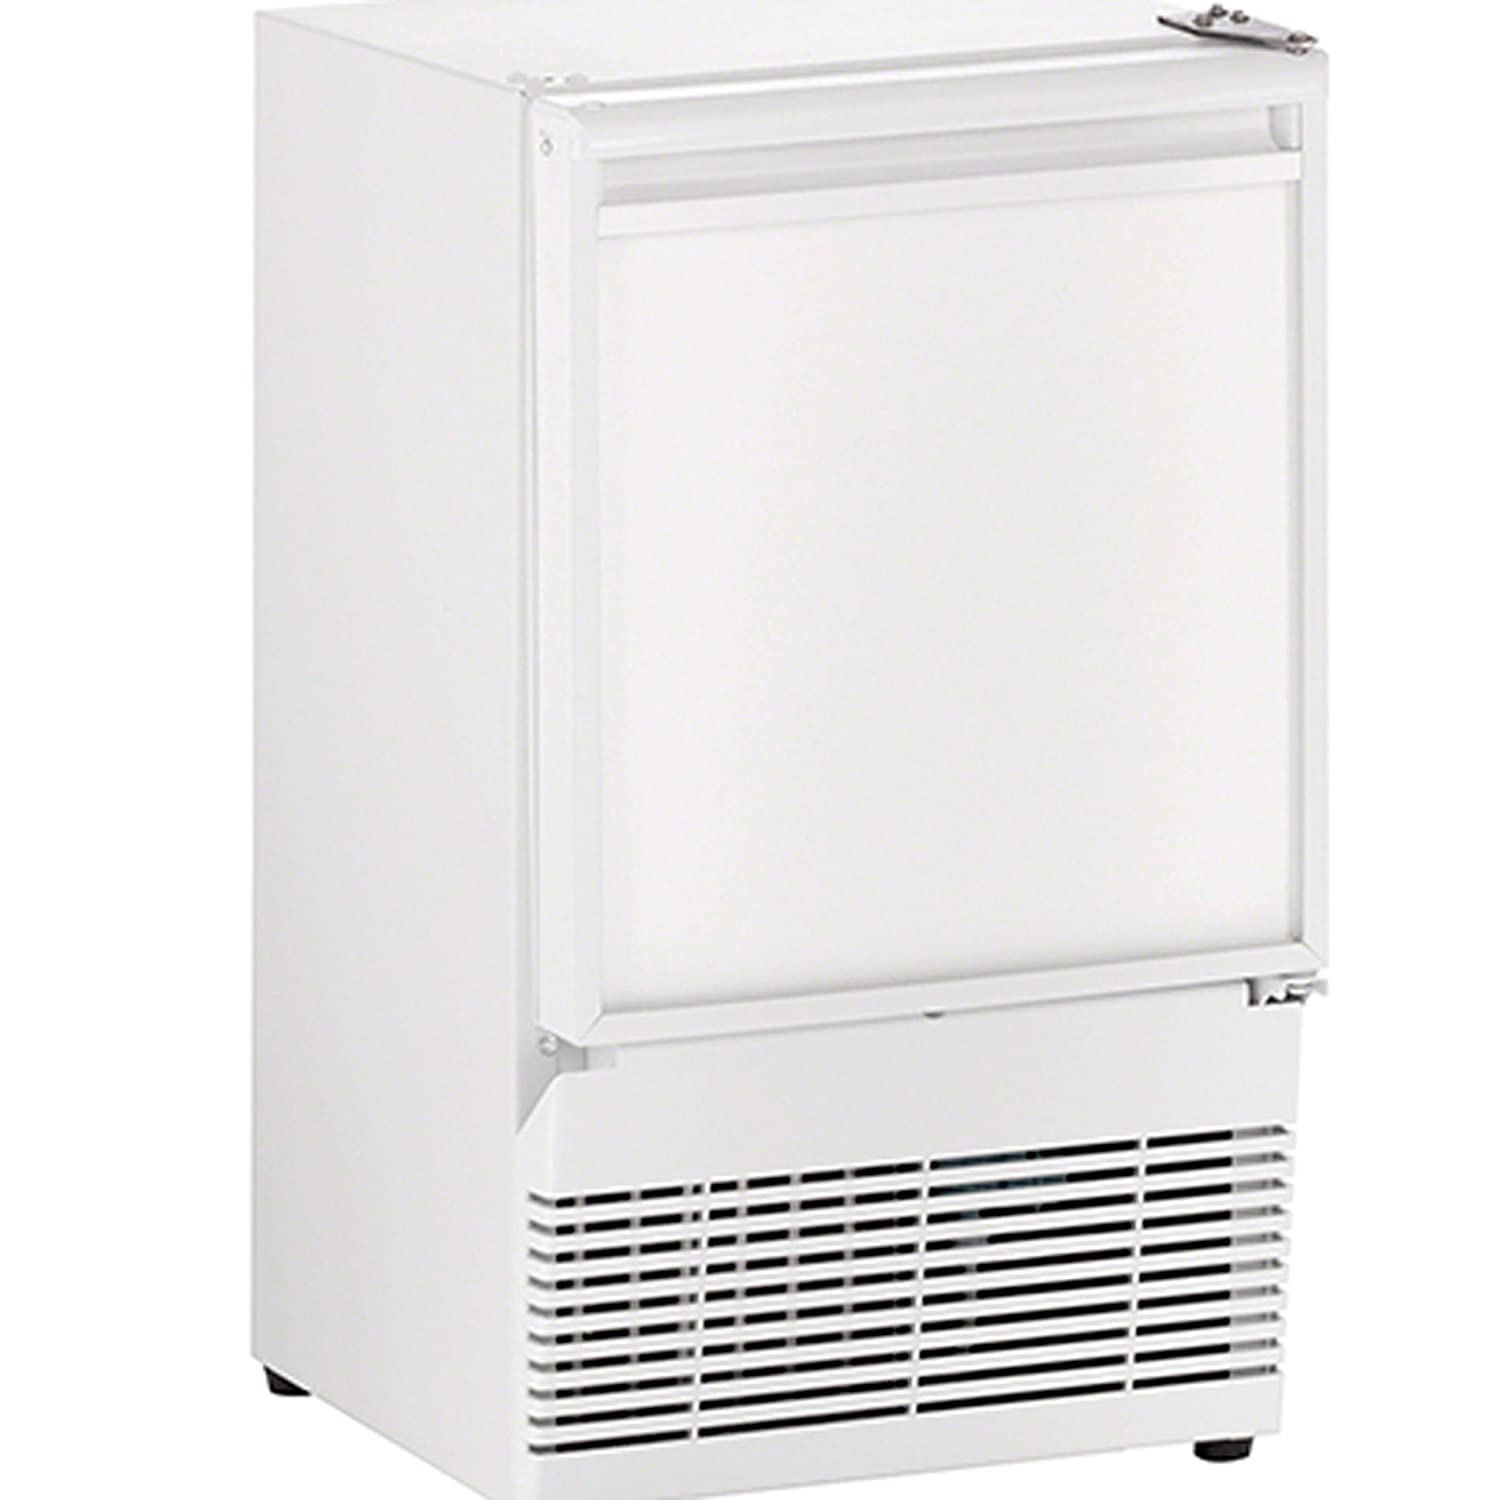 "U-Line U-BI95W-00A Ice Maker 14"" with Reversible Door Hinge White"